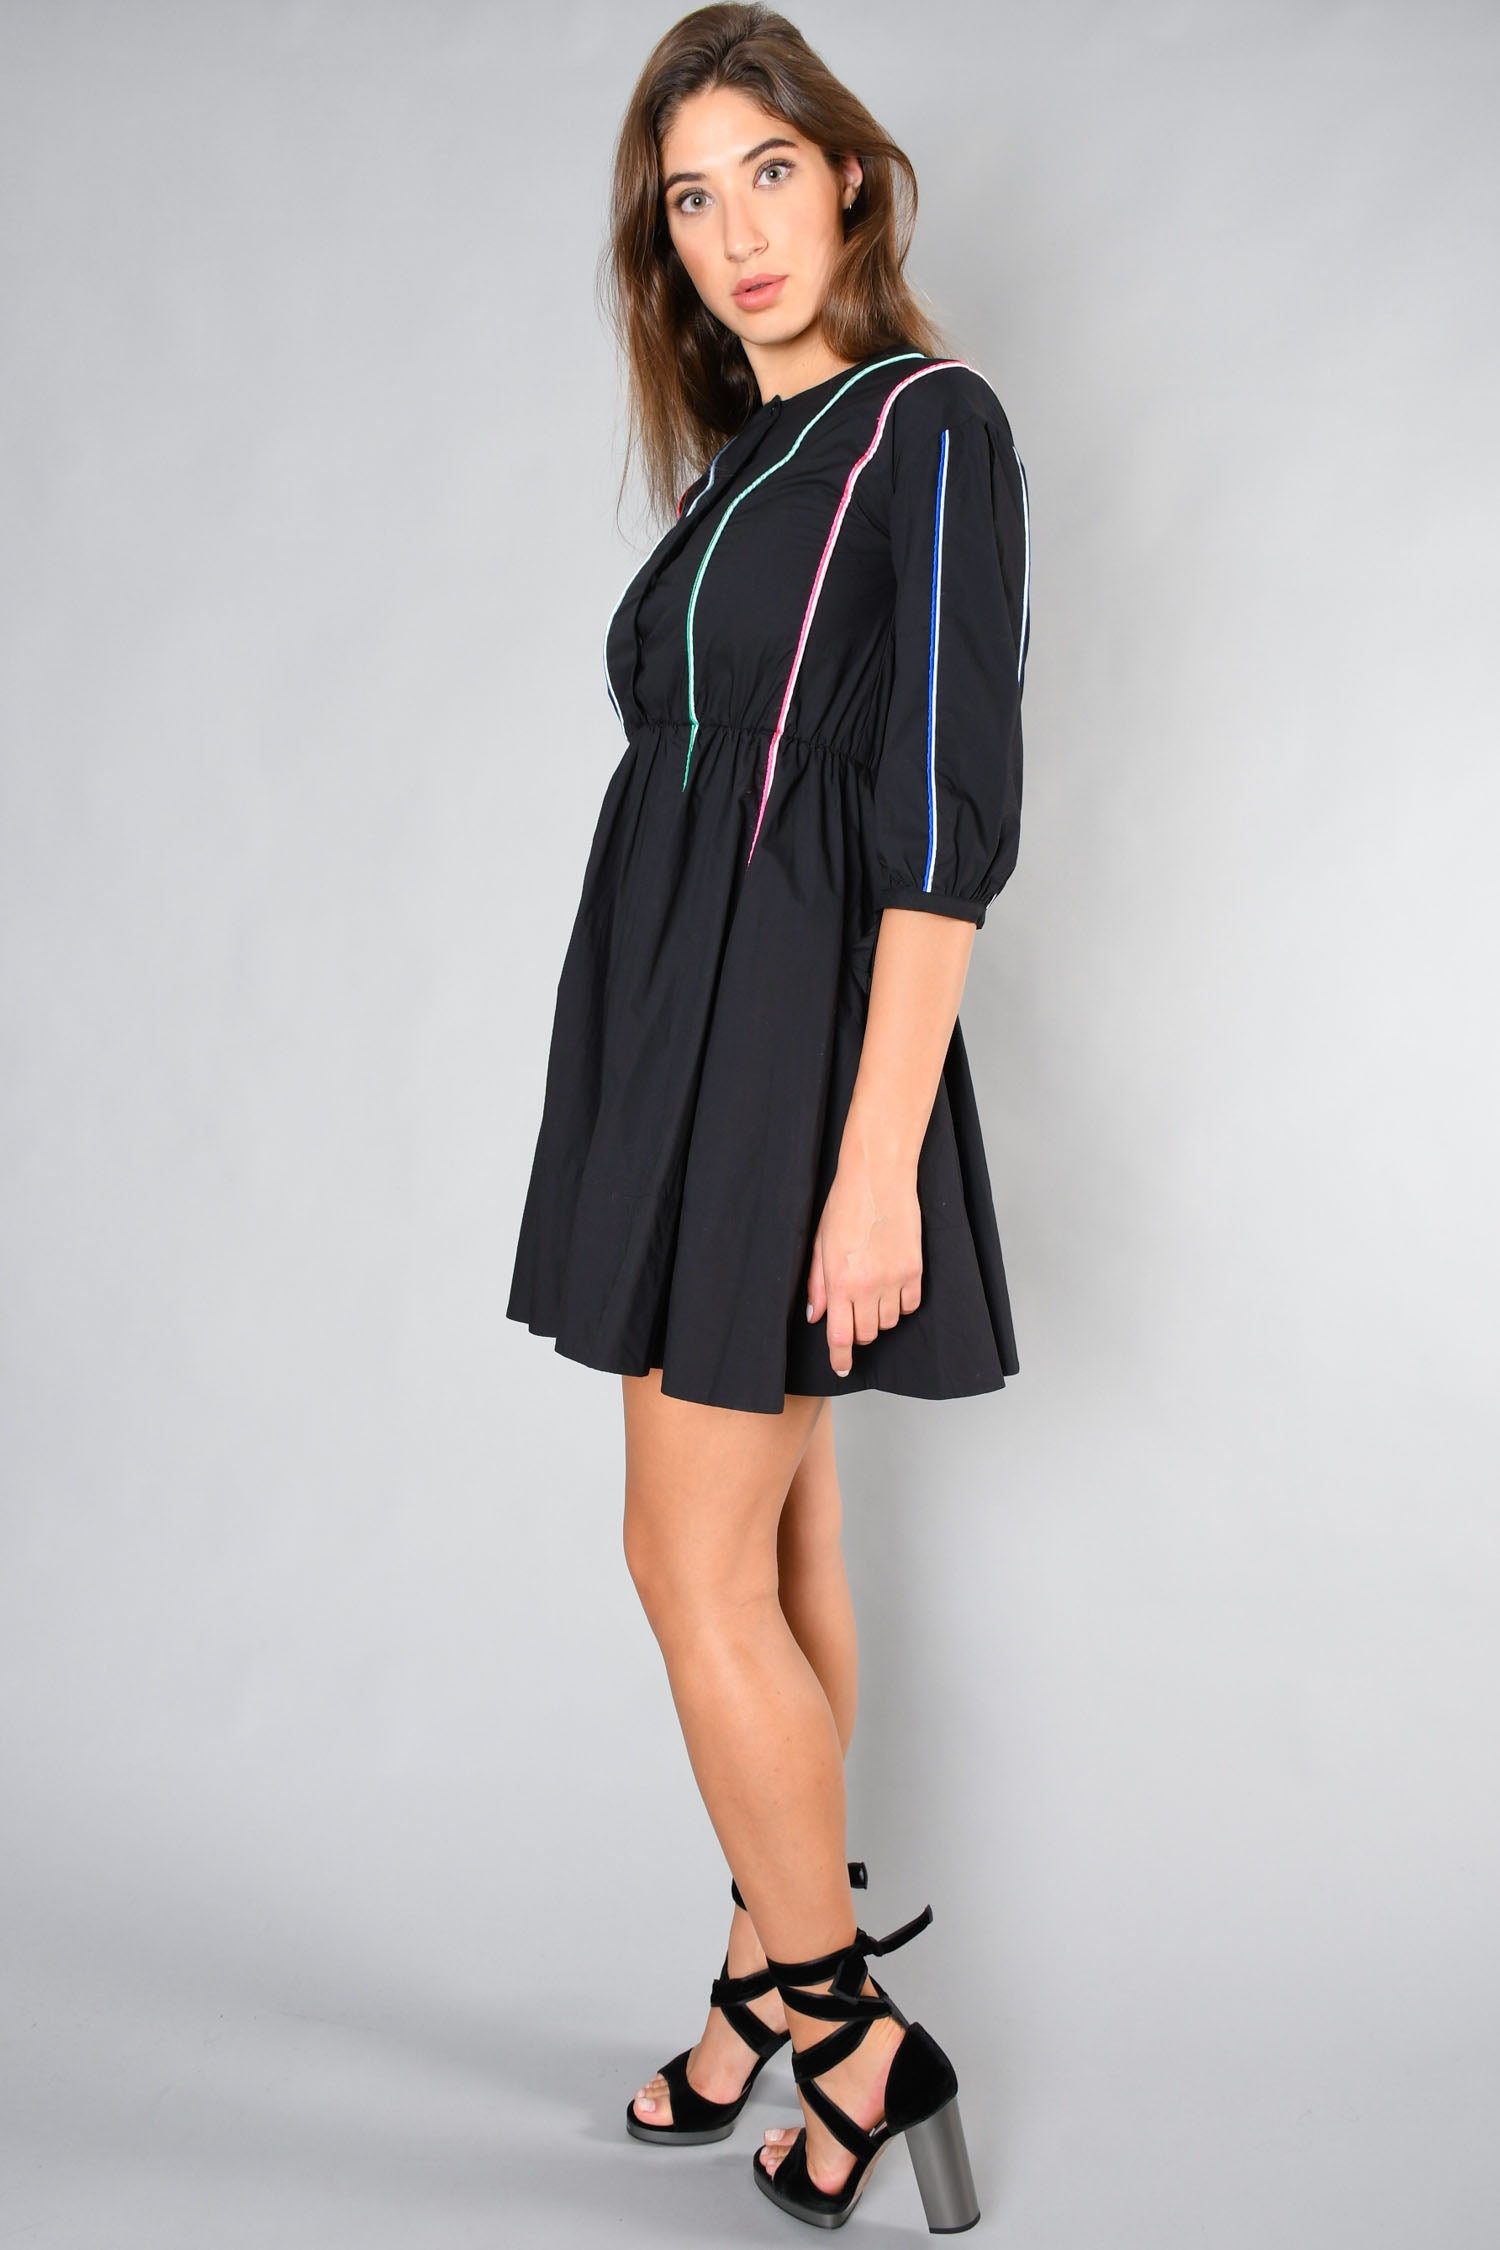 Maje Black L/S Dress w/ Colour Stripe Detail Size 1